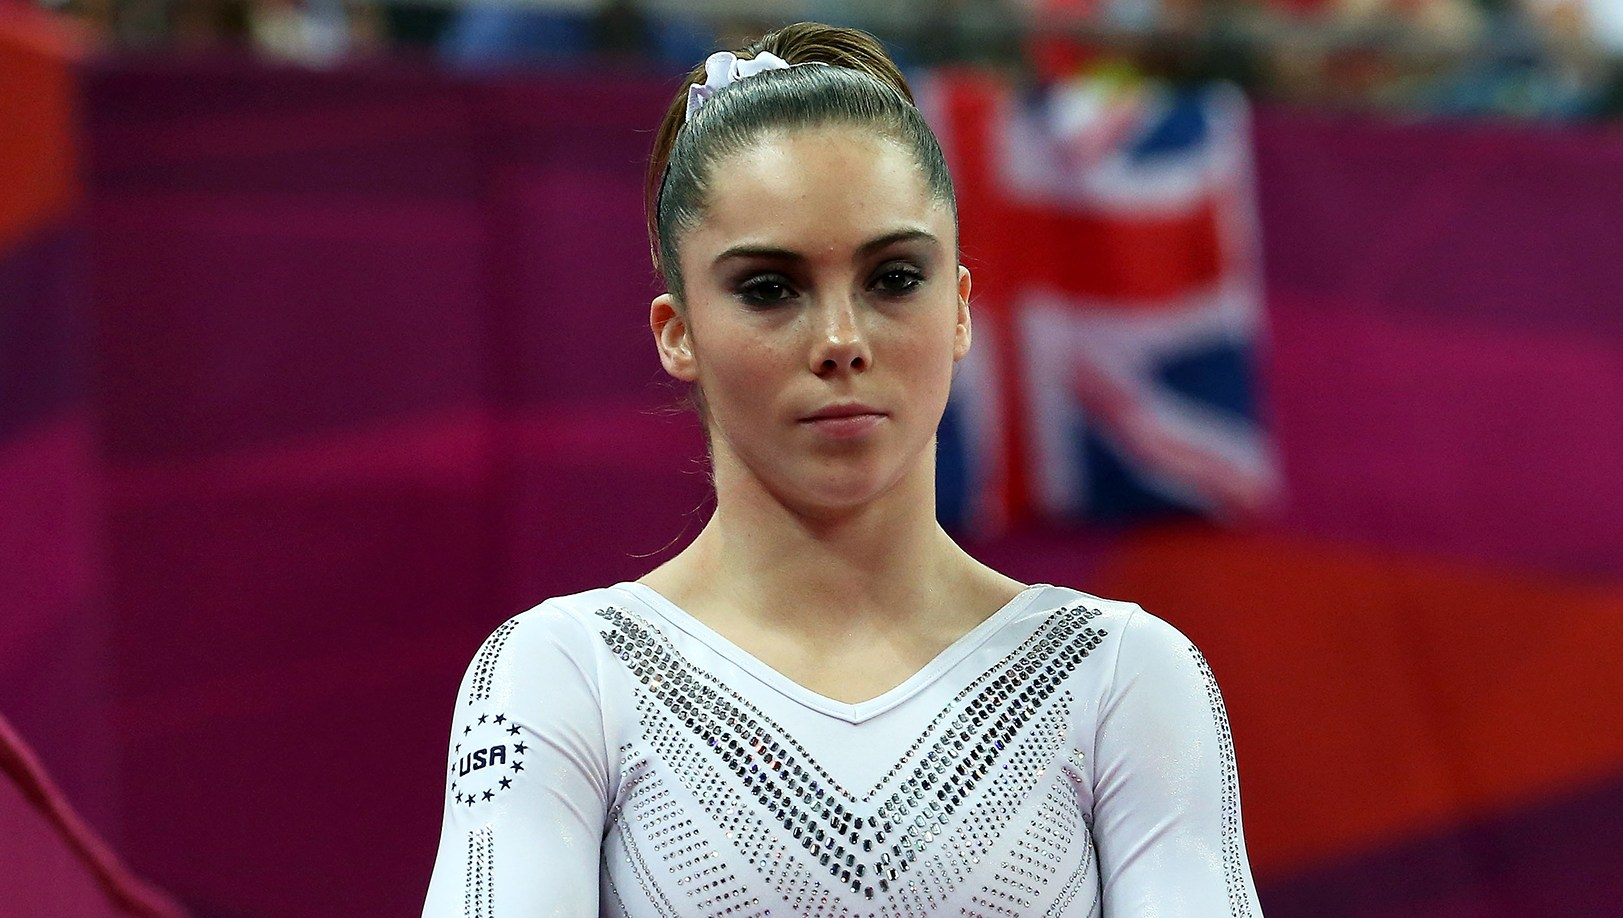 McKayla Maroney Mourns Her Father's Death: 'I'll Miss You Forever'